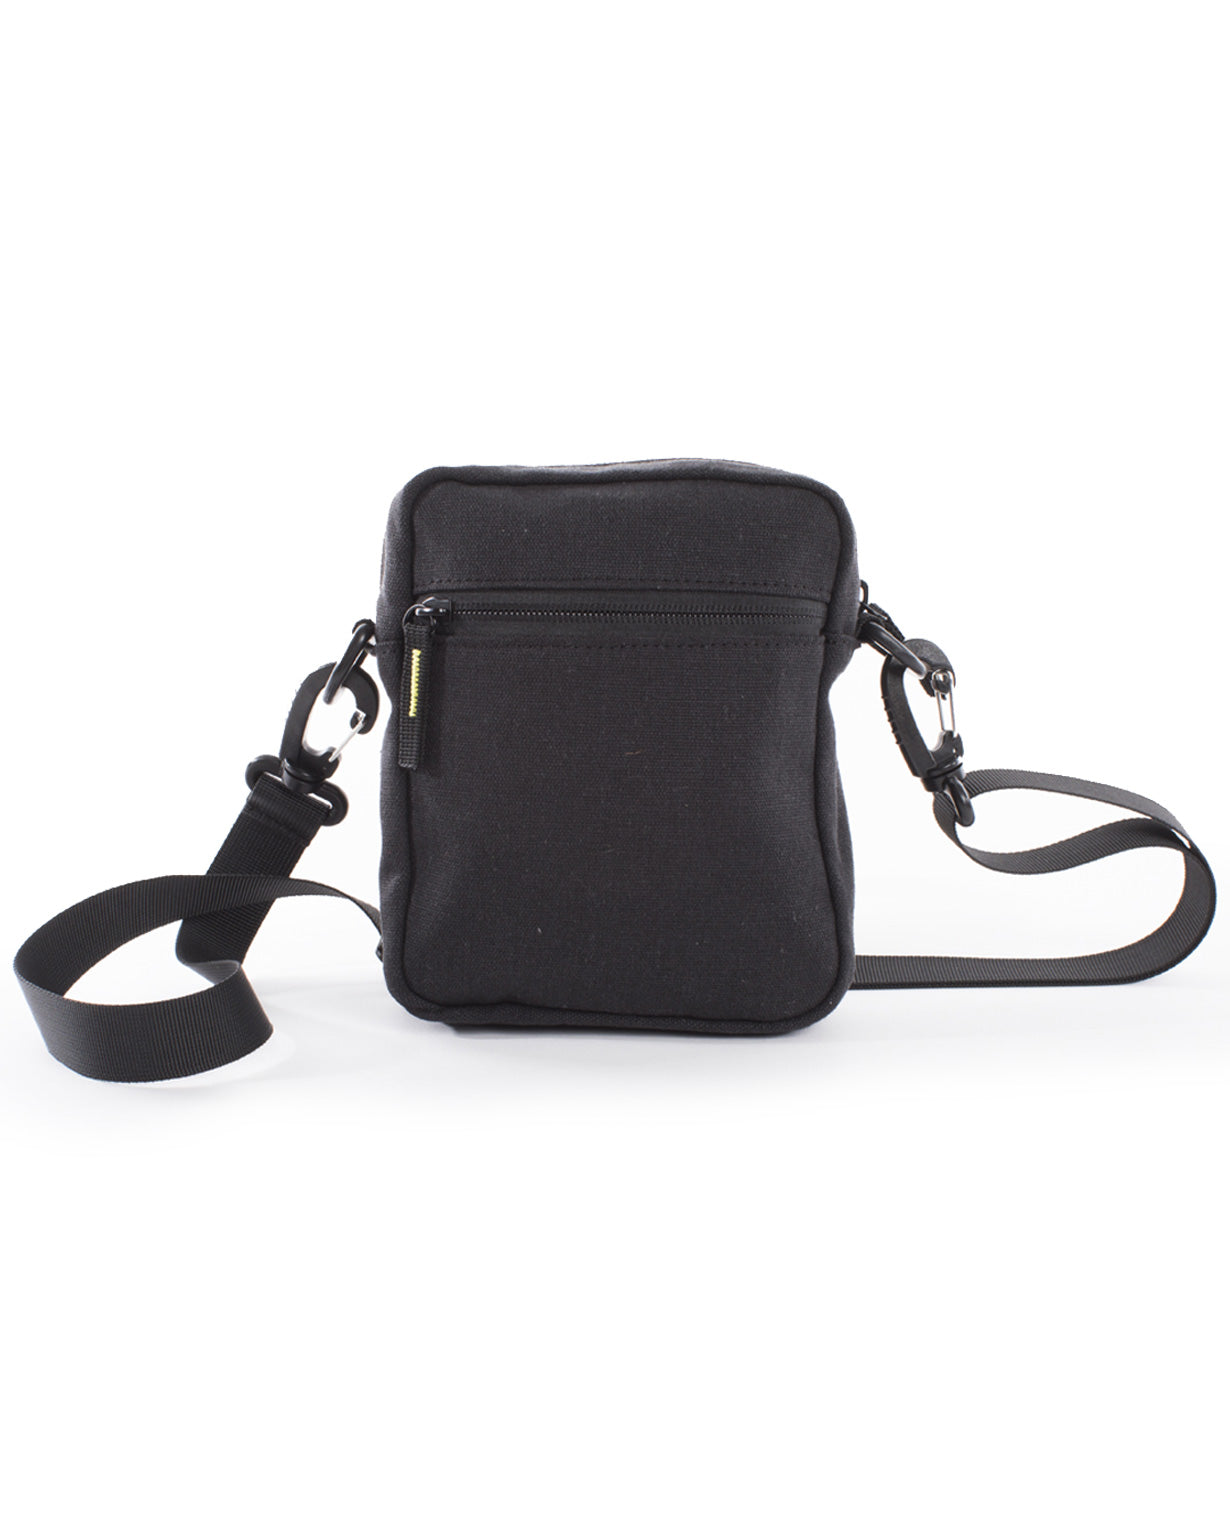 Essential Bag Black